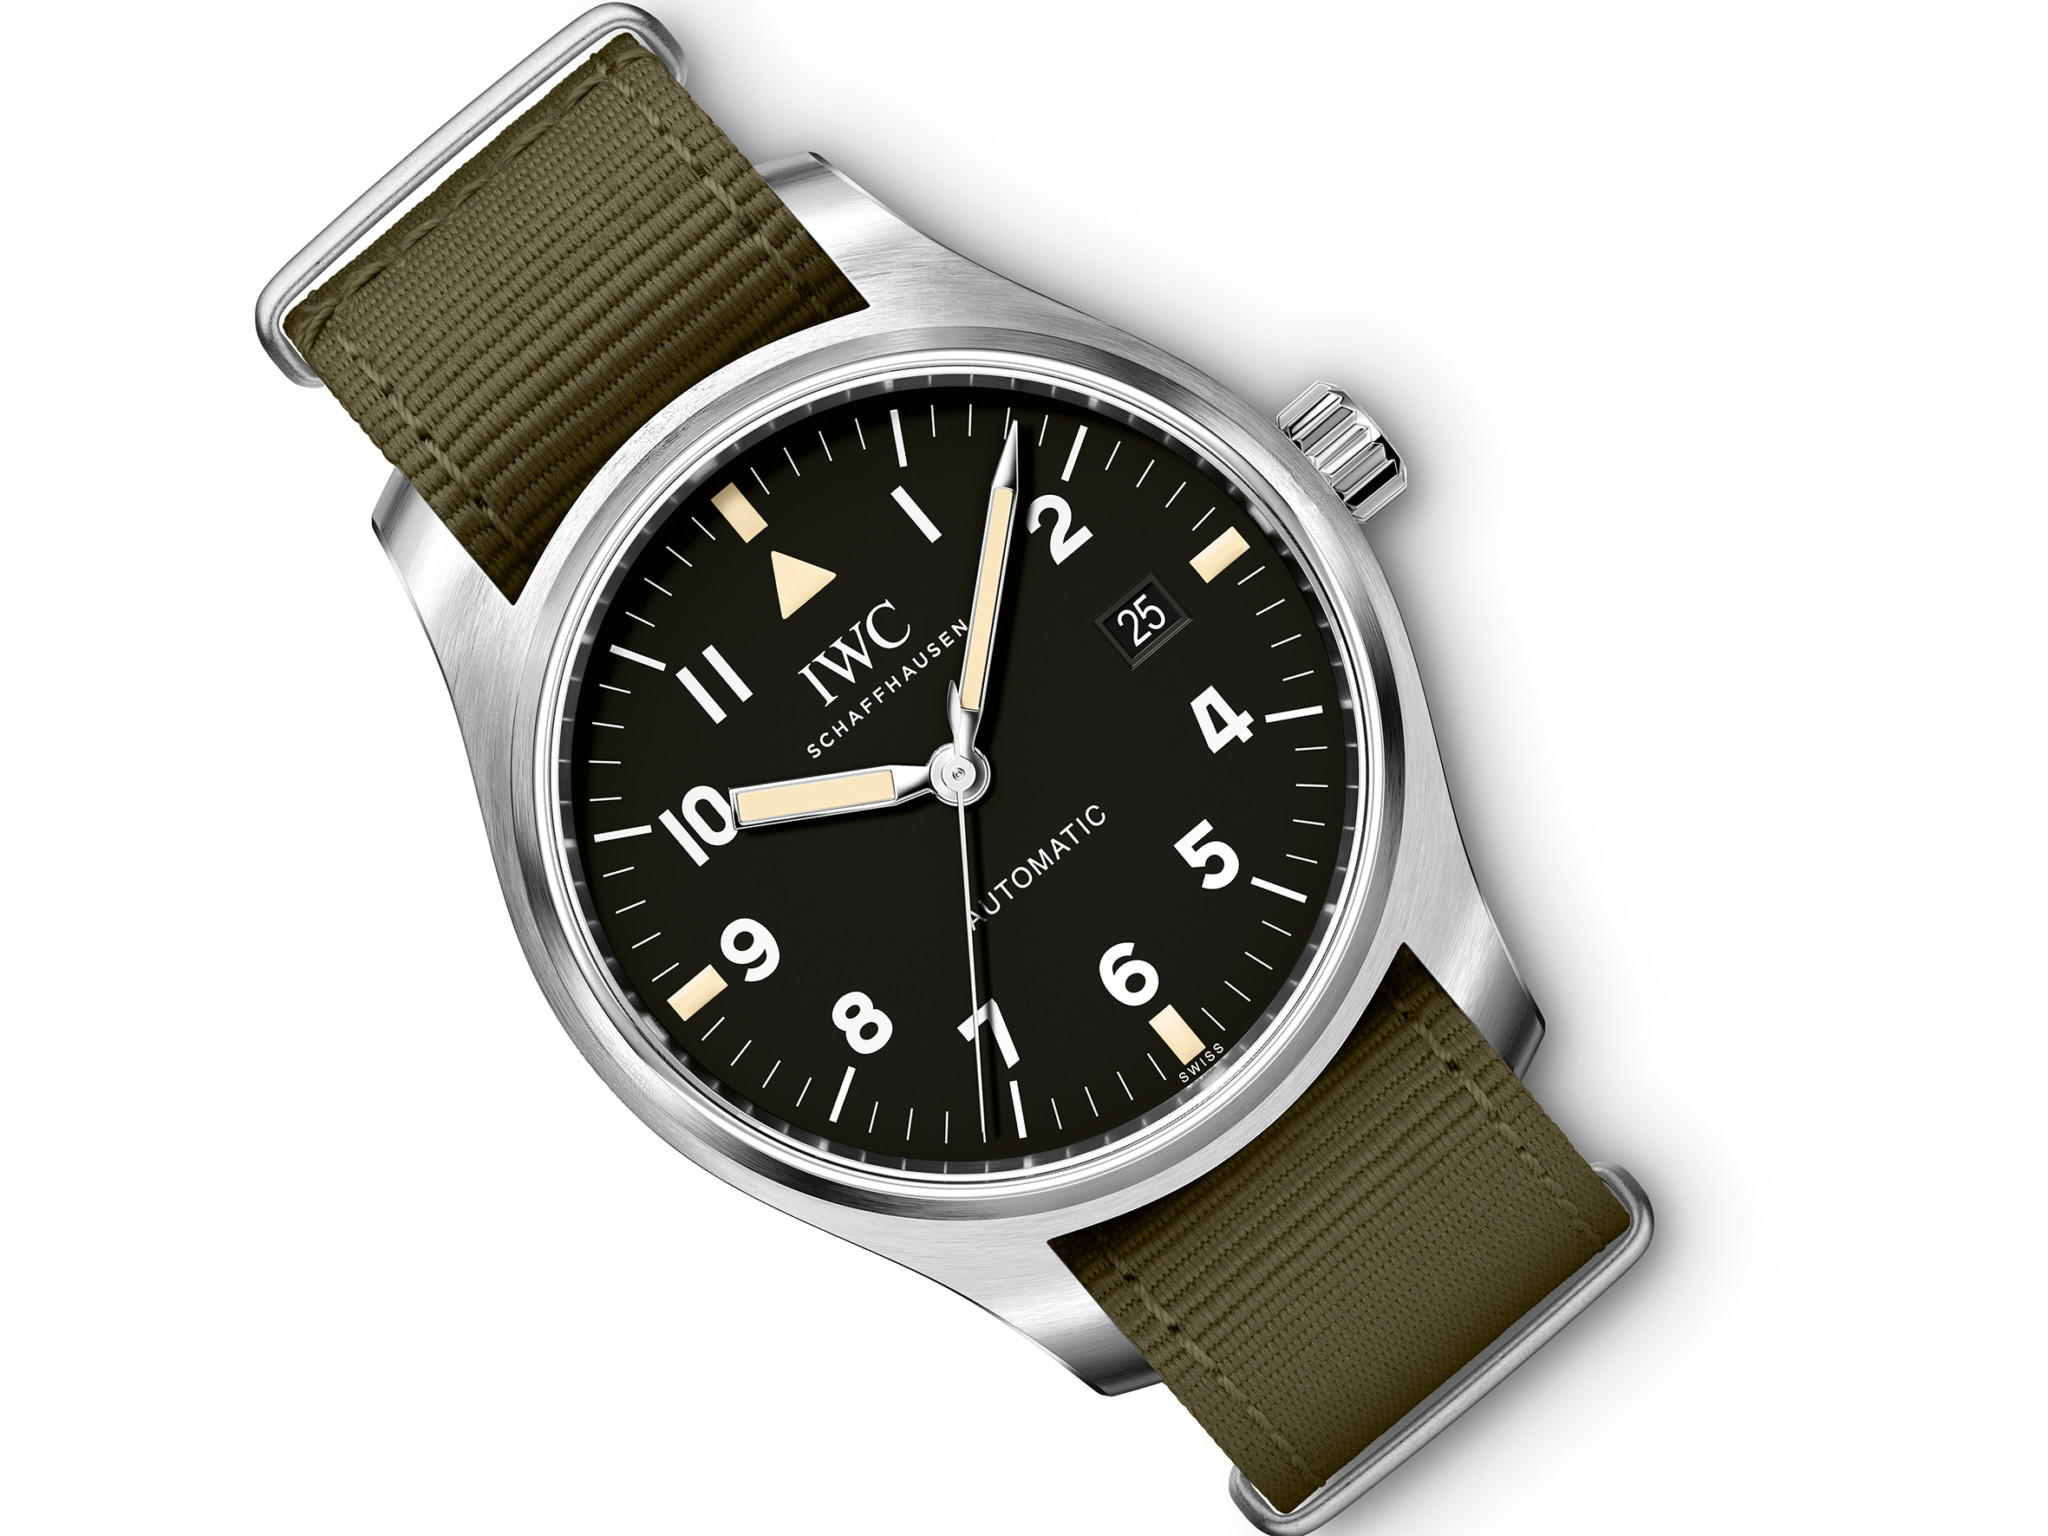 IWC Mark XVIII Pilot watch.